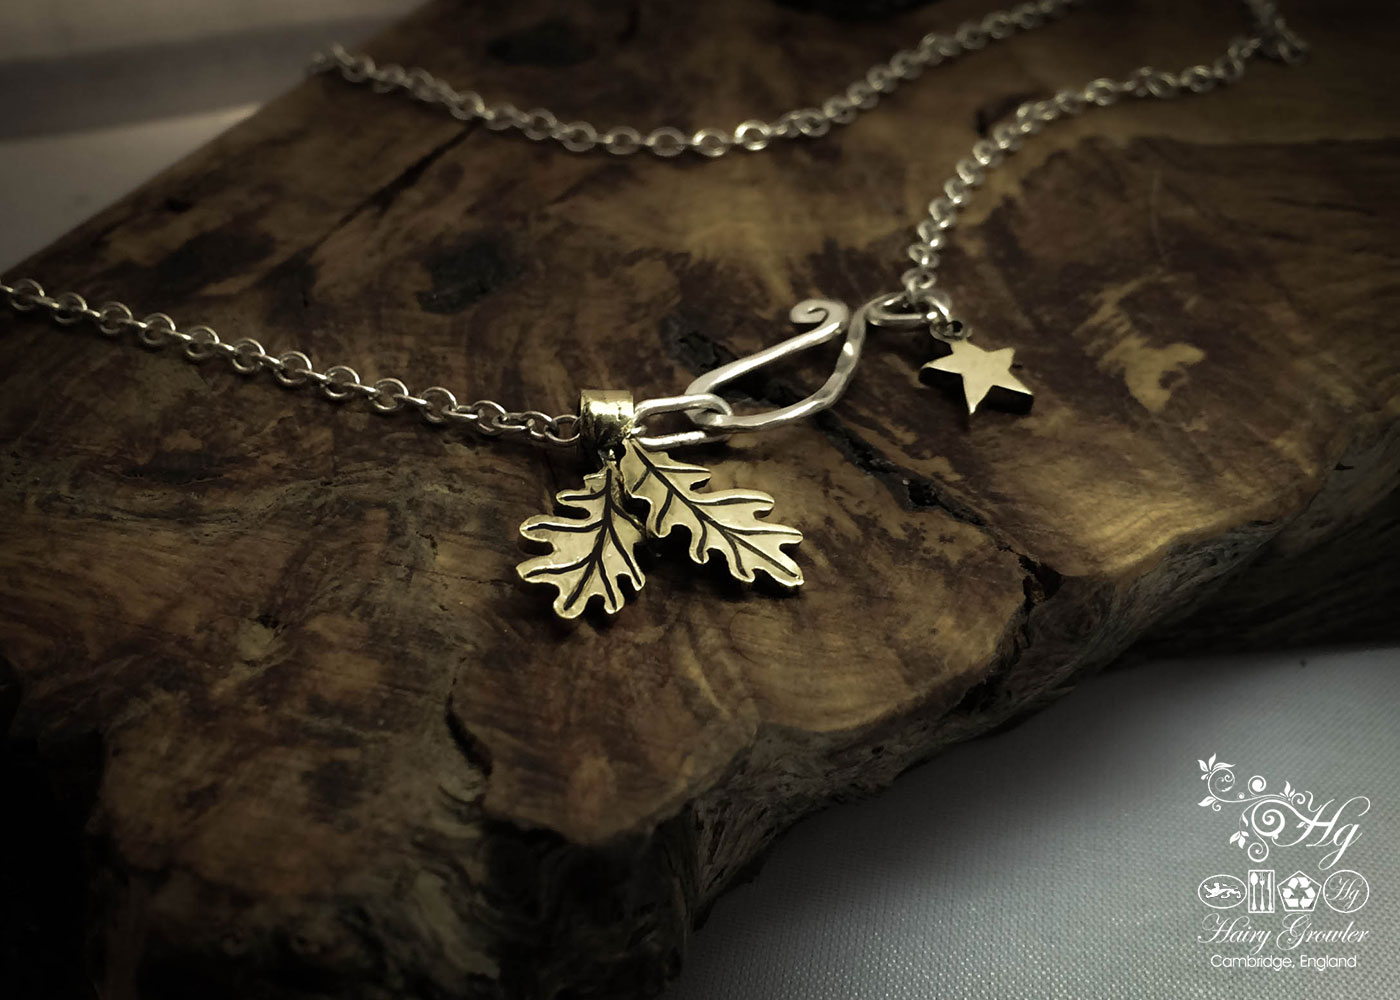 handcrafted bronze pair of oak leaves charm for a tree sculpture, necklace or bracelet